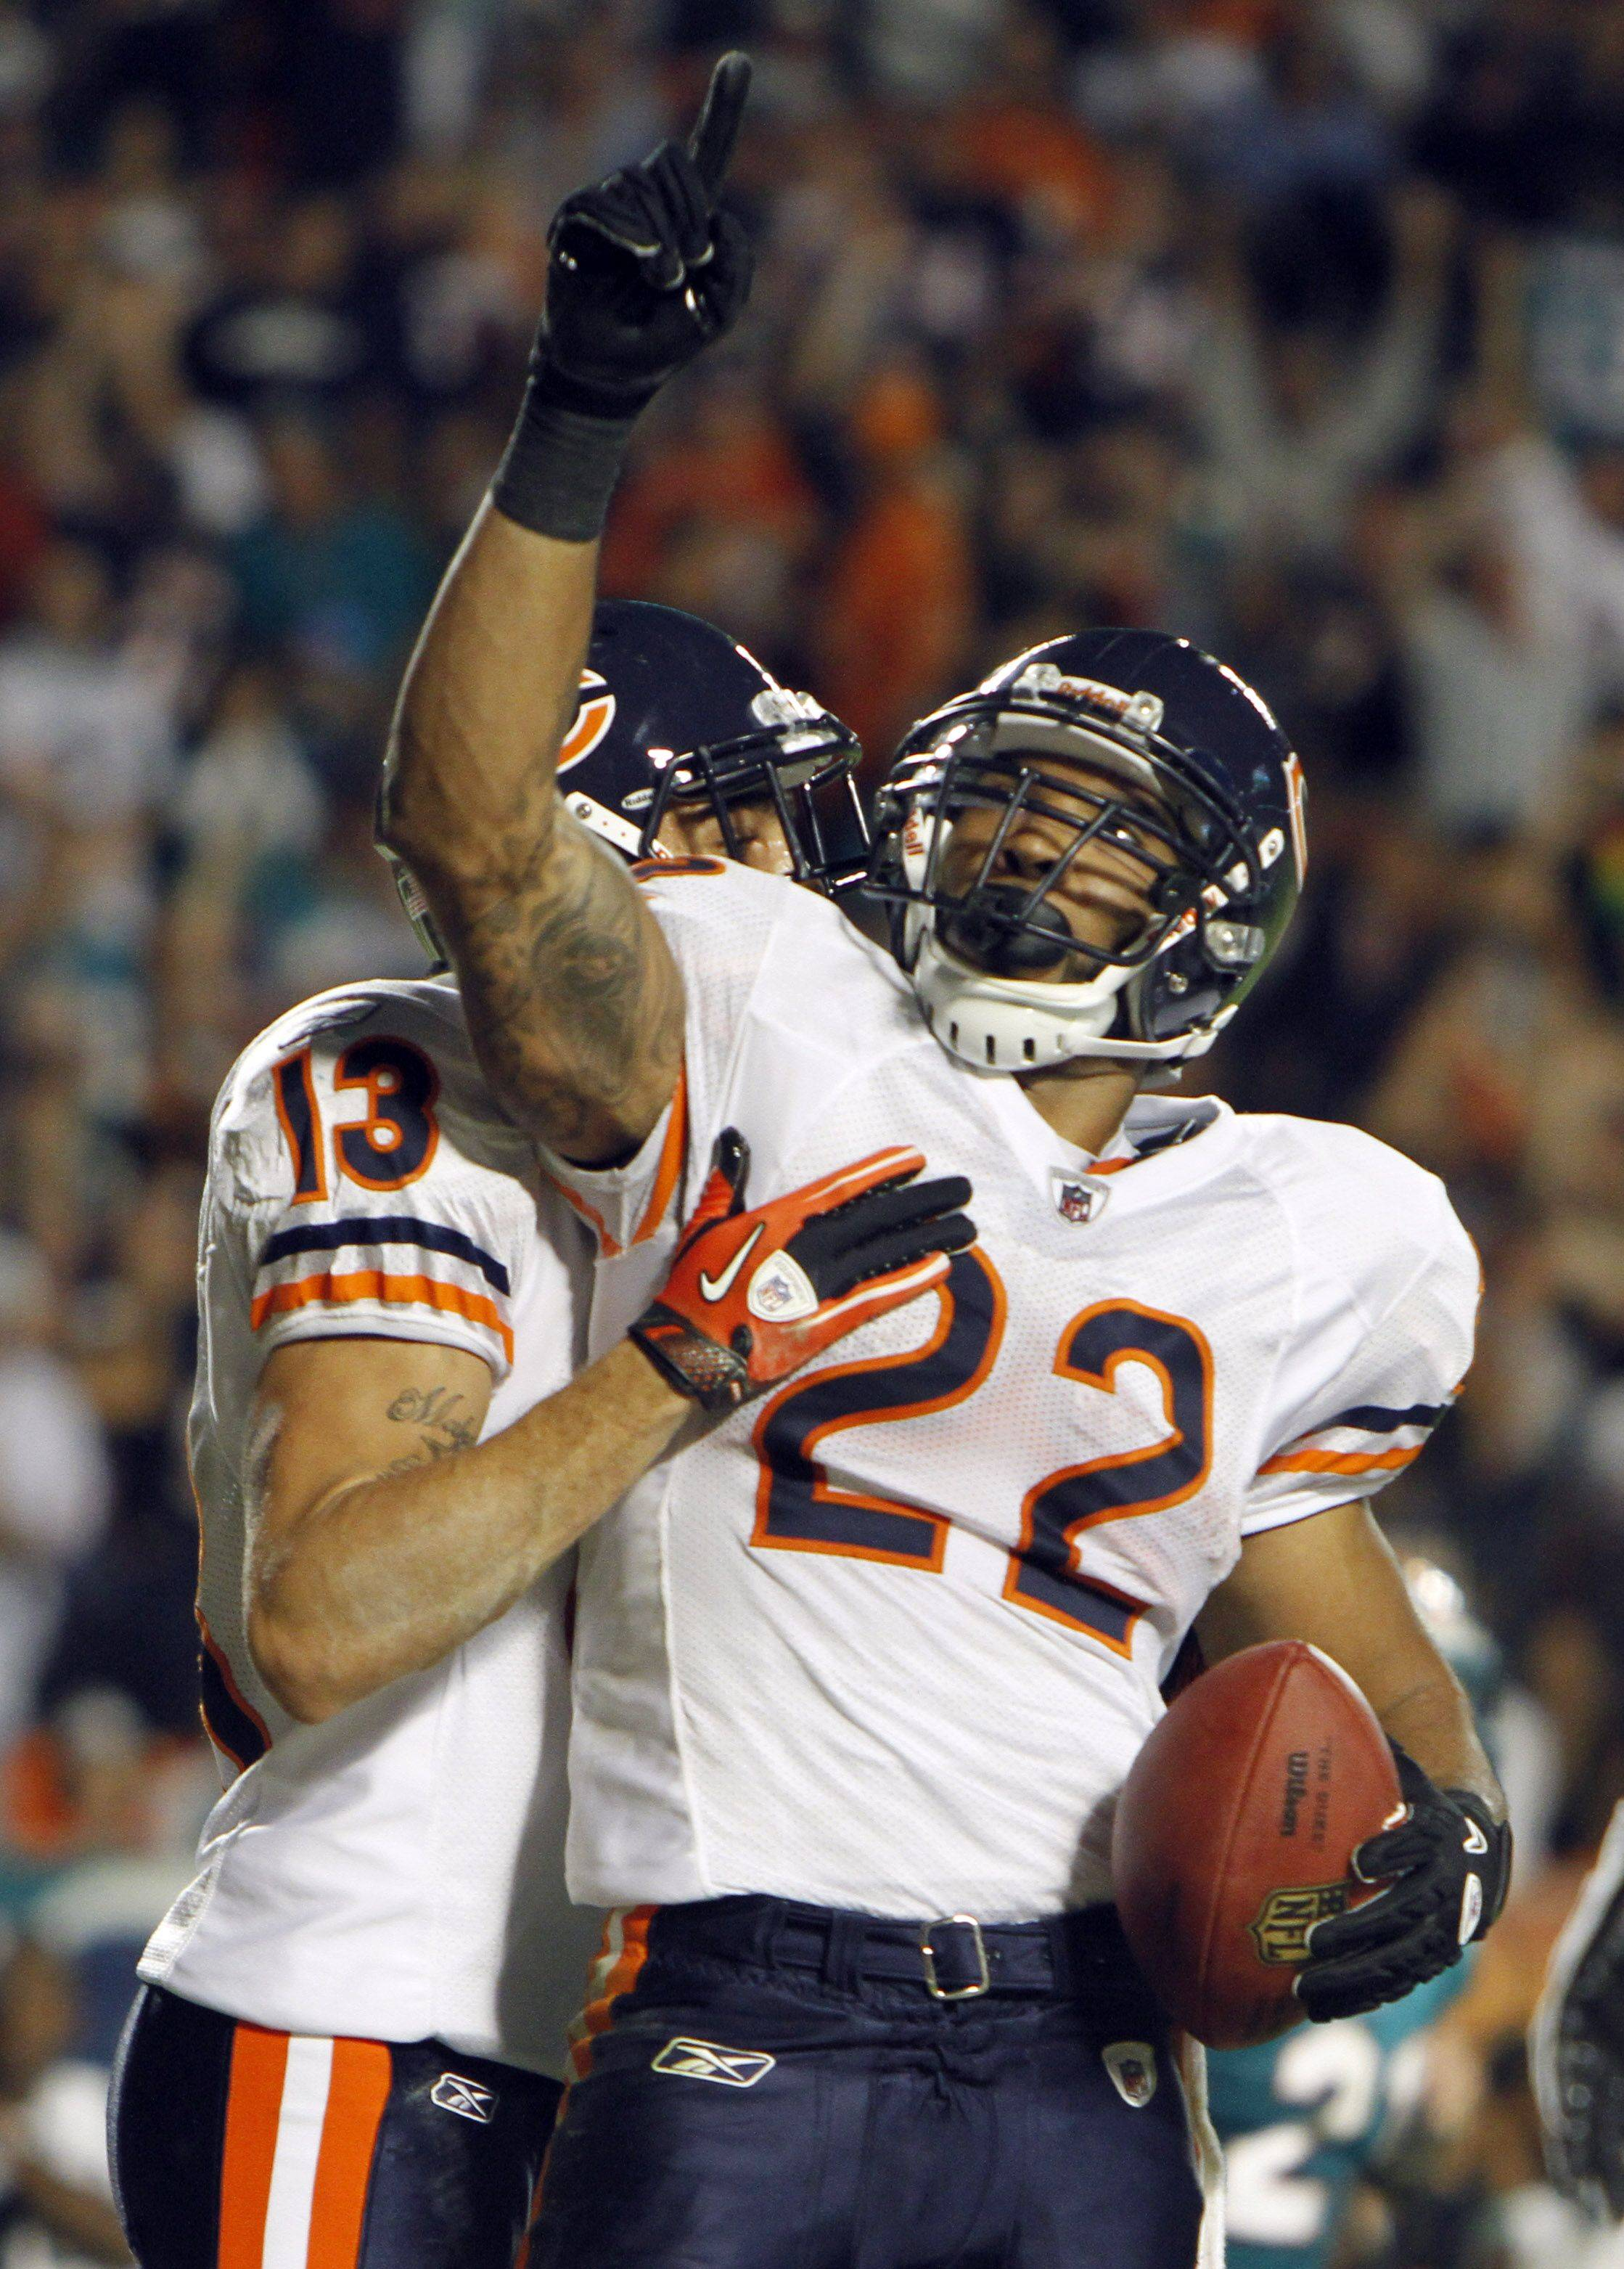 Chicago Bears running back Matt Forte reacts after scoring a touchdown during the third quarter. Bears wide receiver Johnny Knox also reacts.